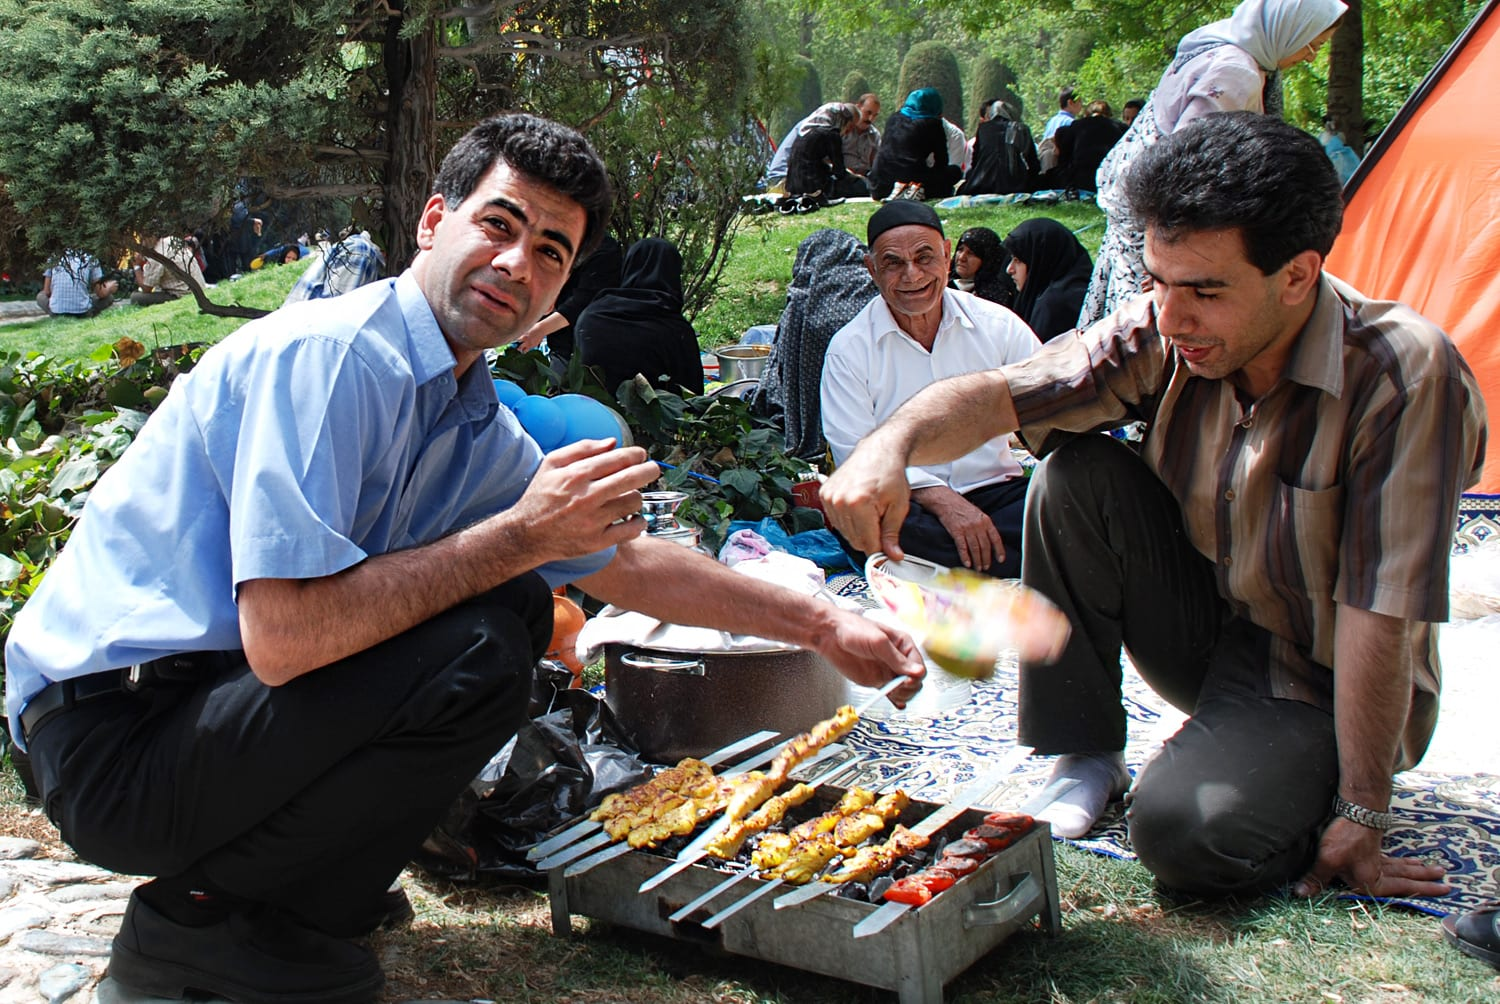 How does Tehran look like during Iranian Nowruz